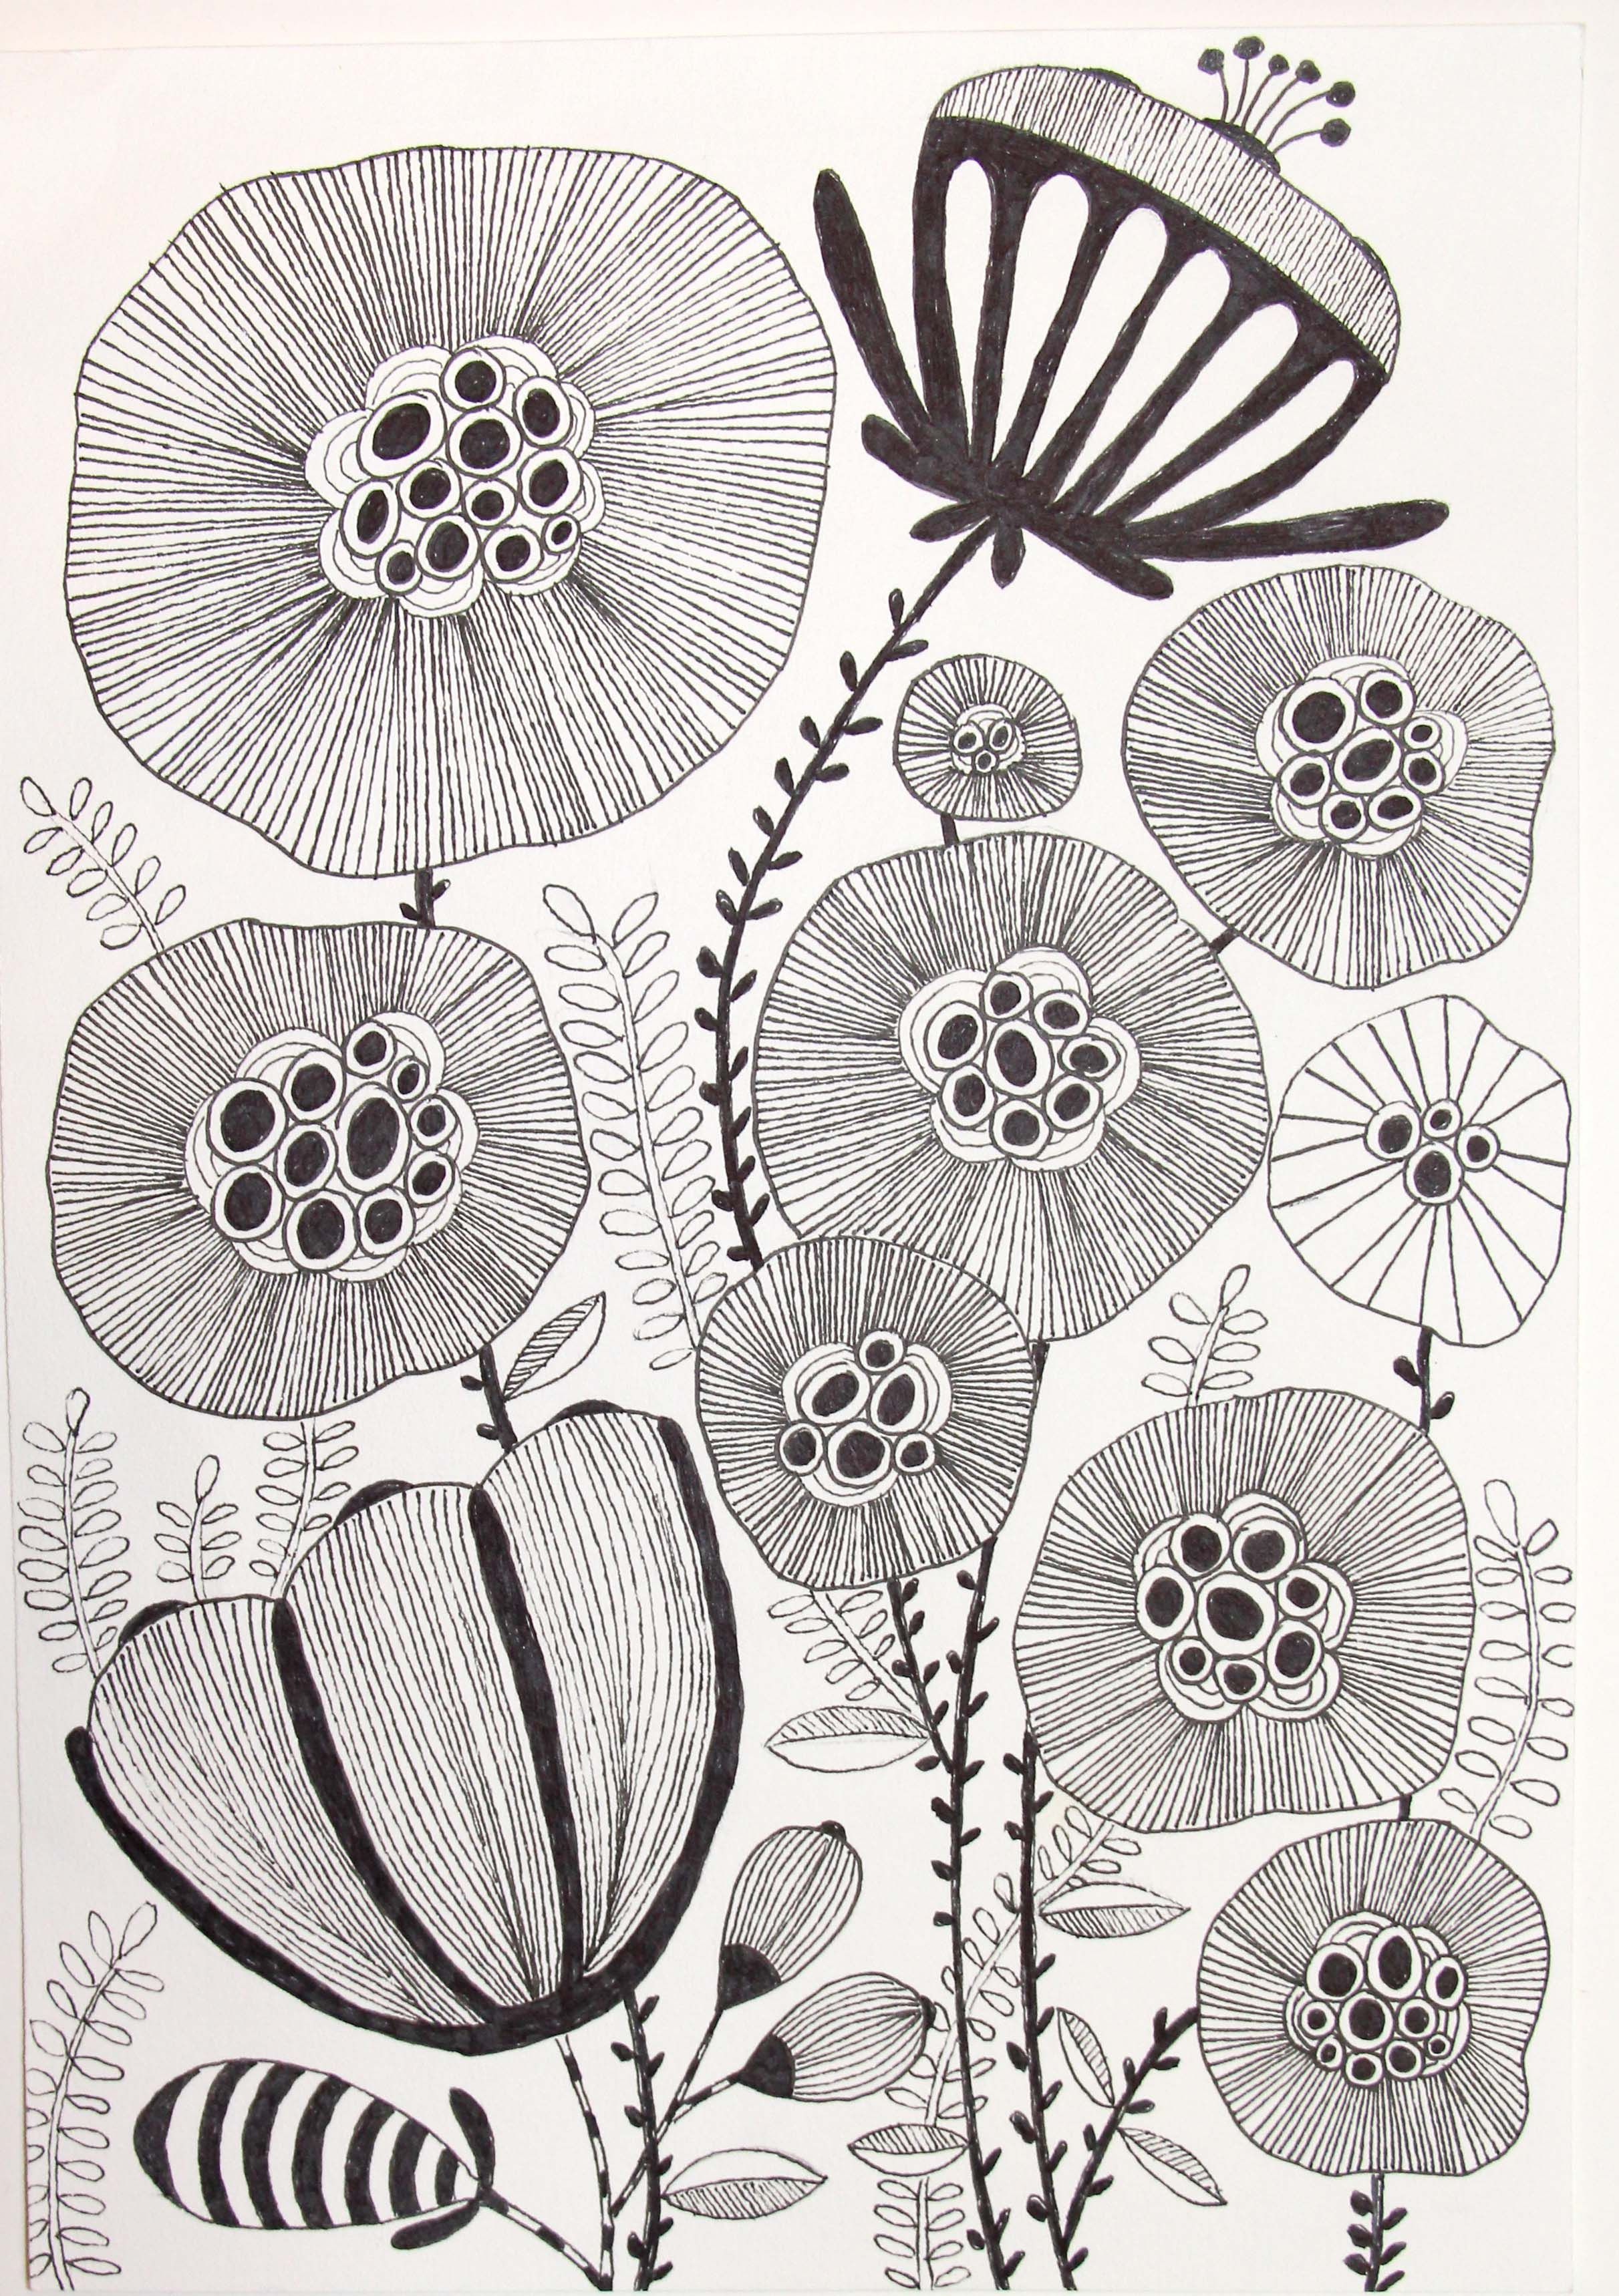 Flowers, Micron pen, Sharpies